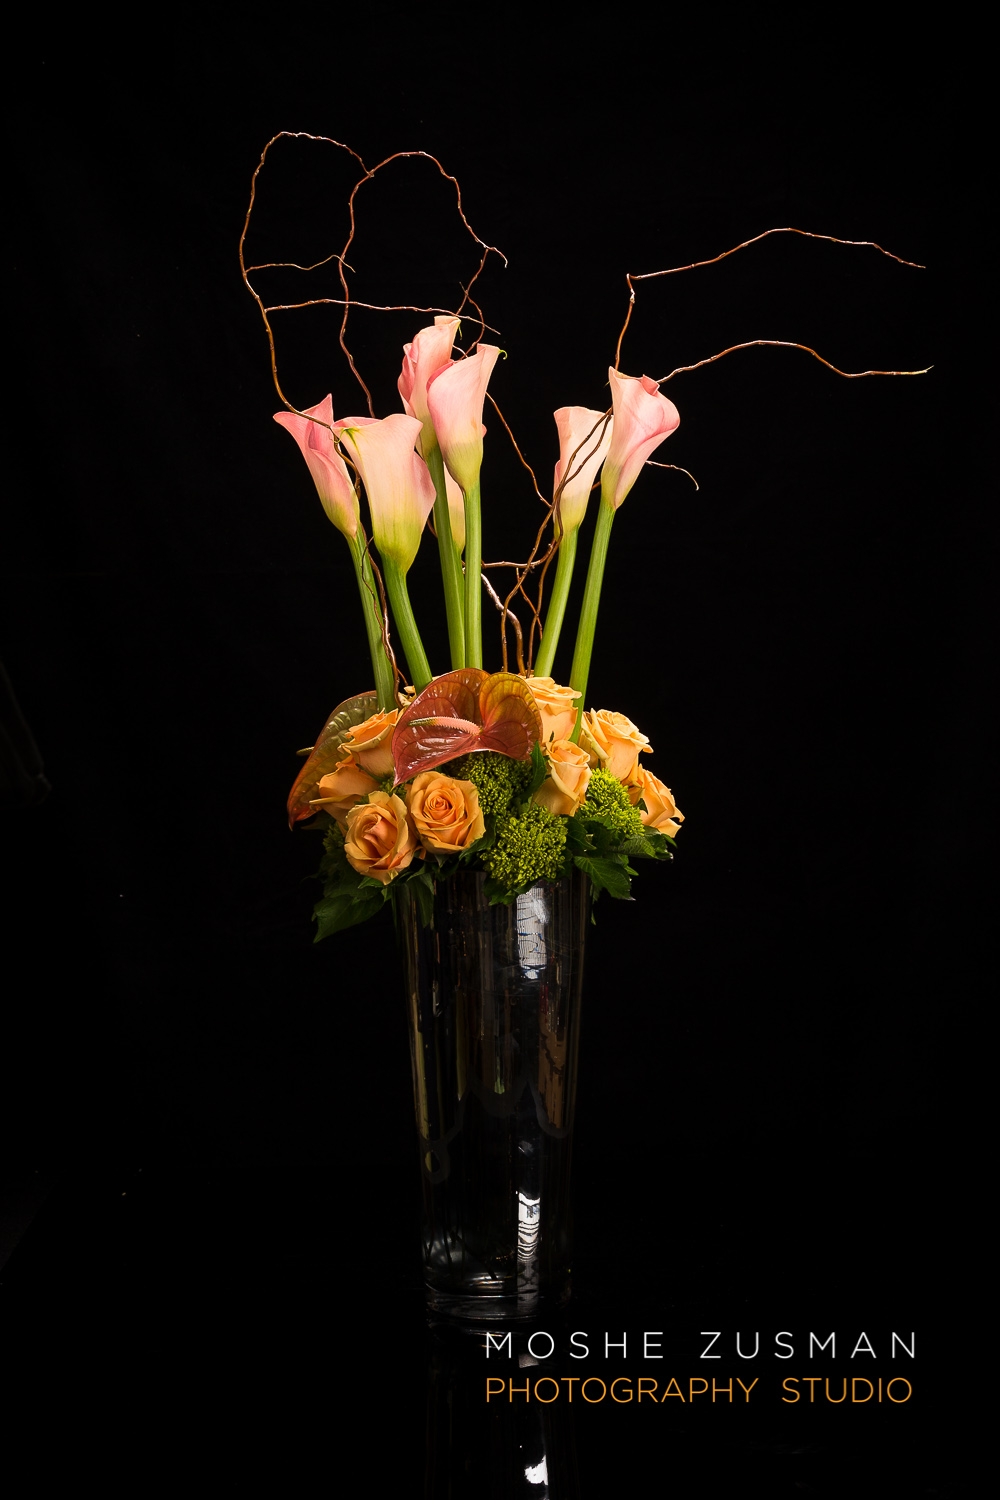 May_Flowers_Reston_Moshe_Zusman_Photography_Valentines_Flowers-09.jpg